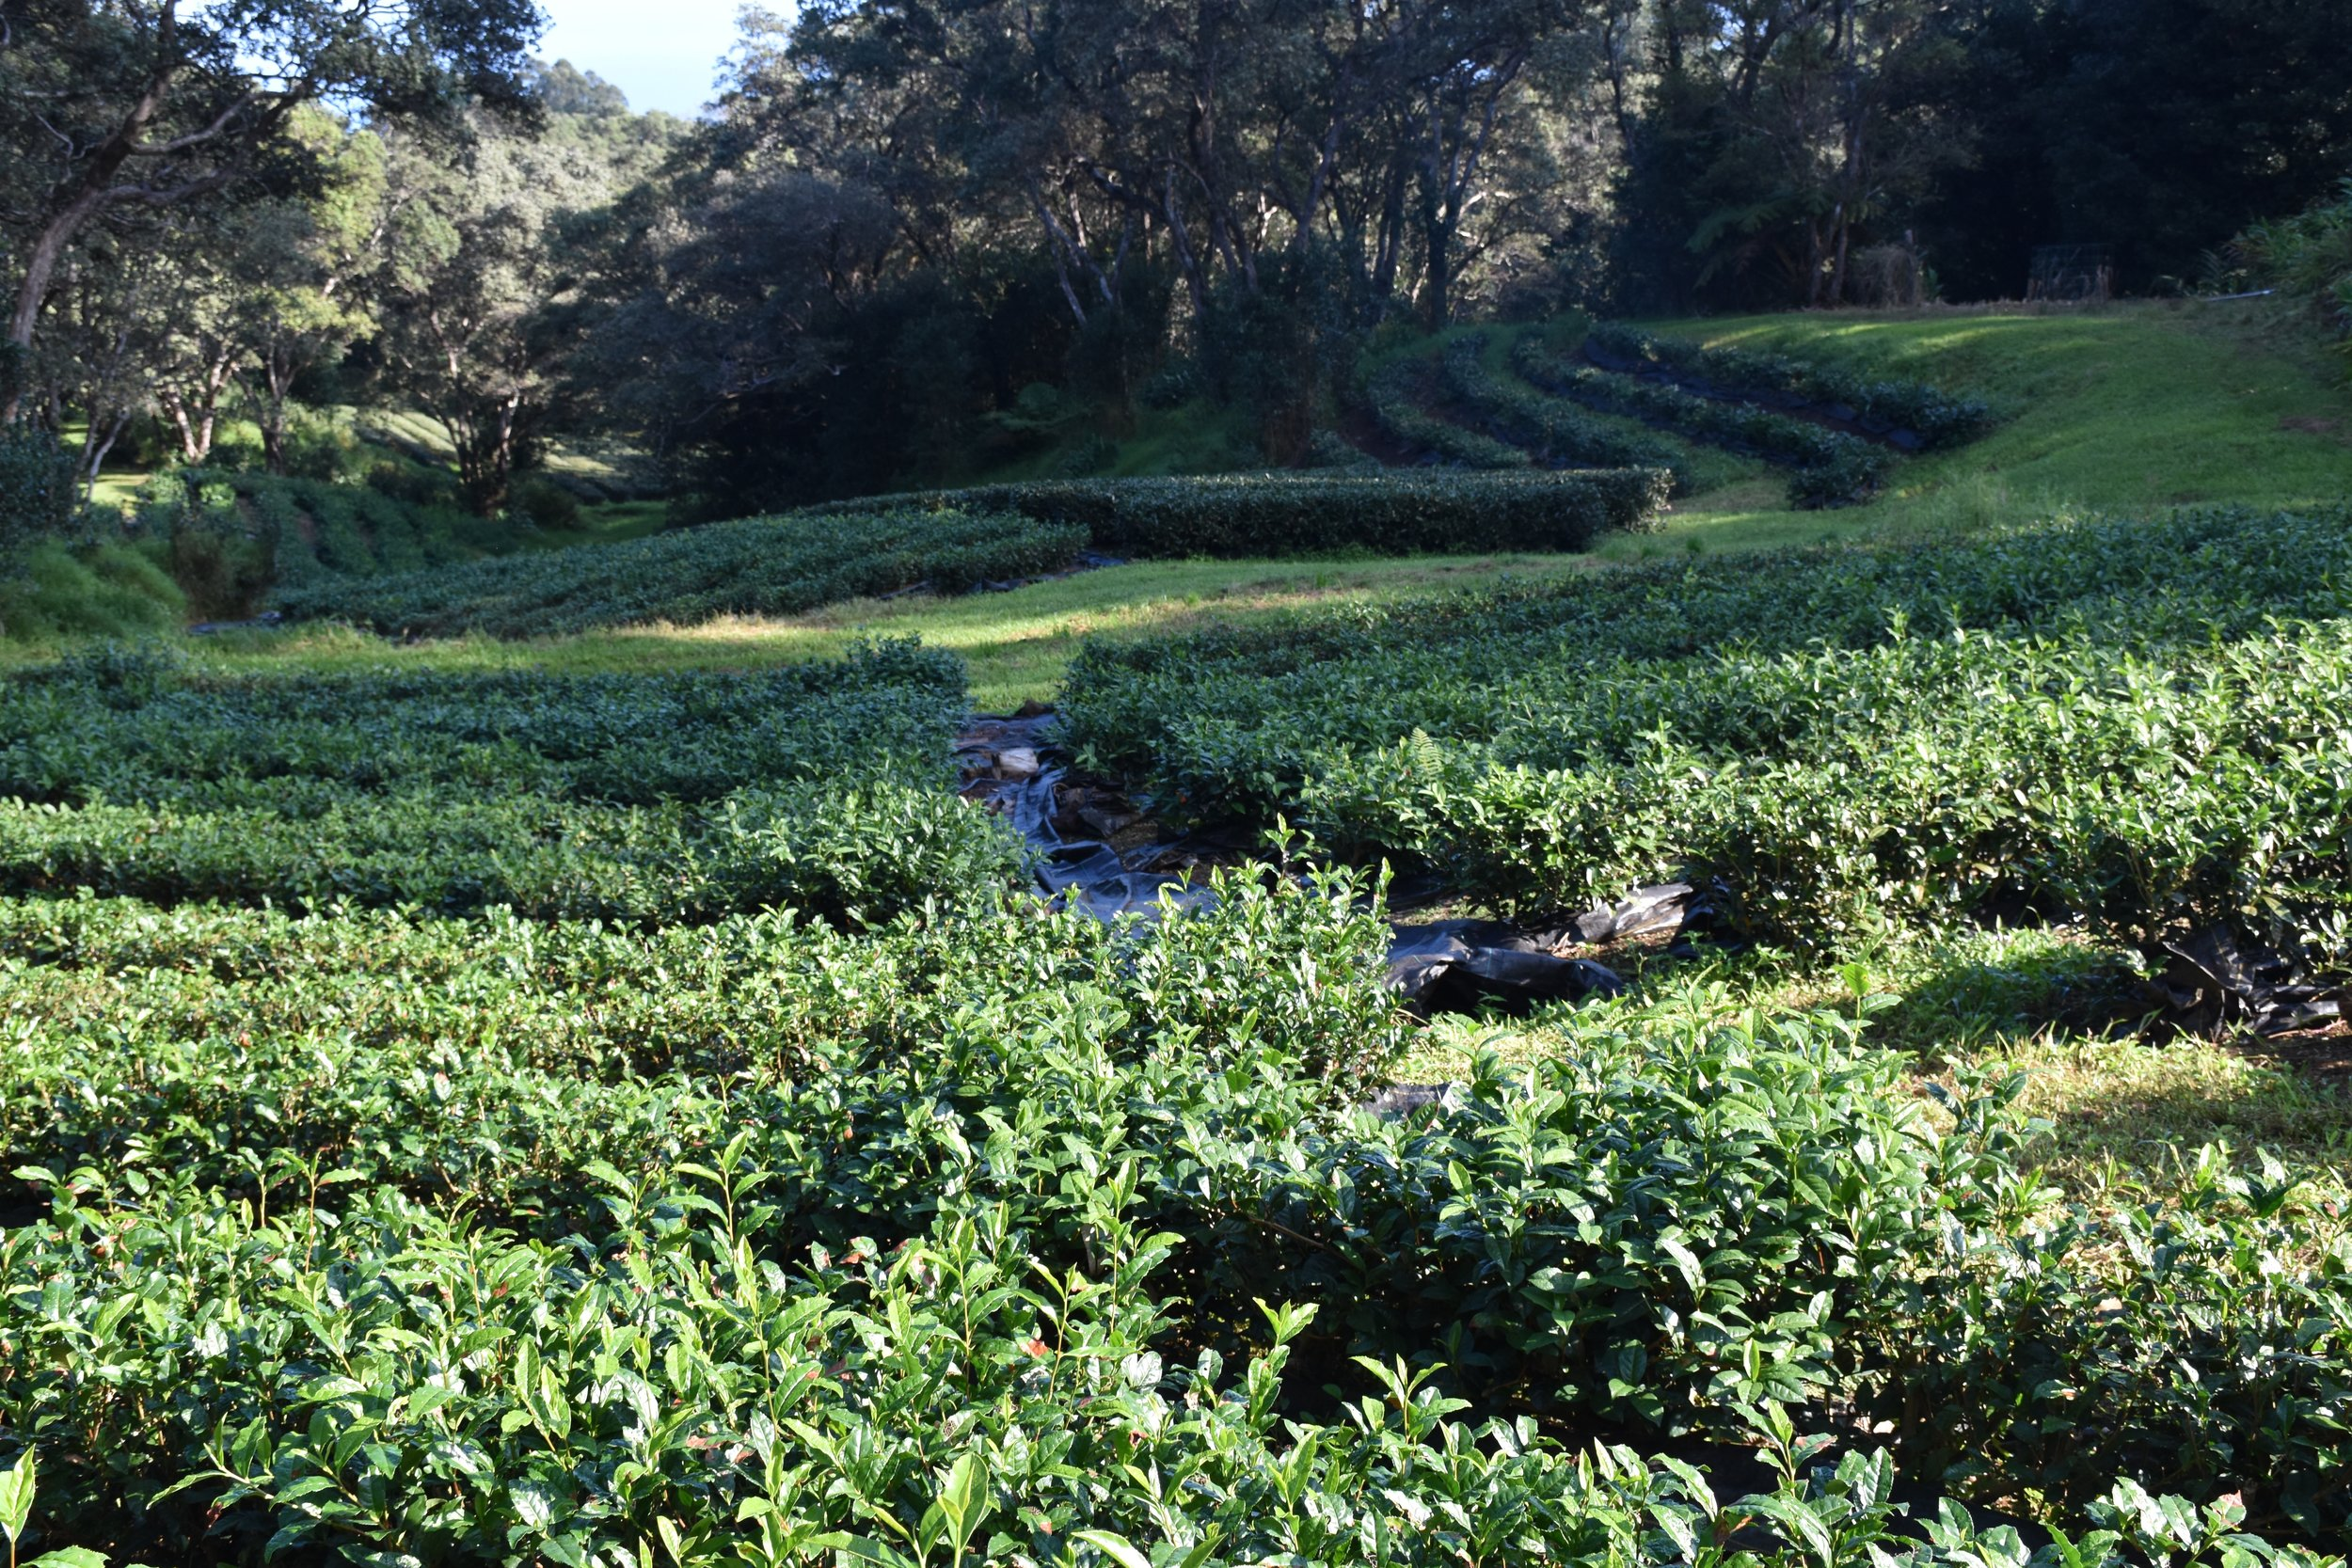 The Tea Fields at Mauna Kea Tea Farm